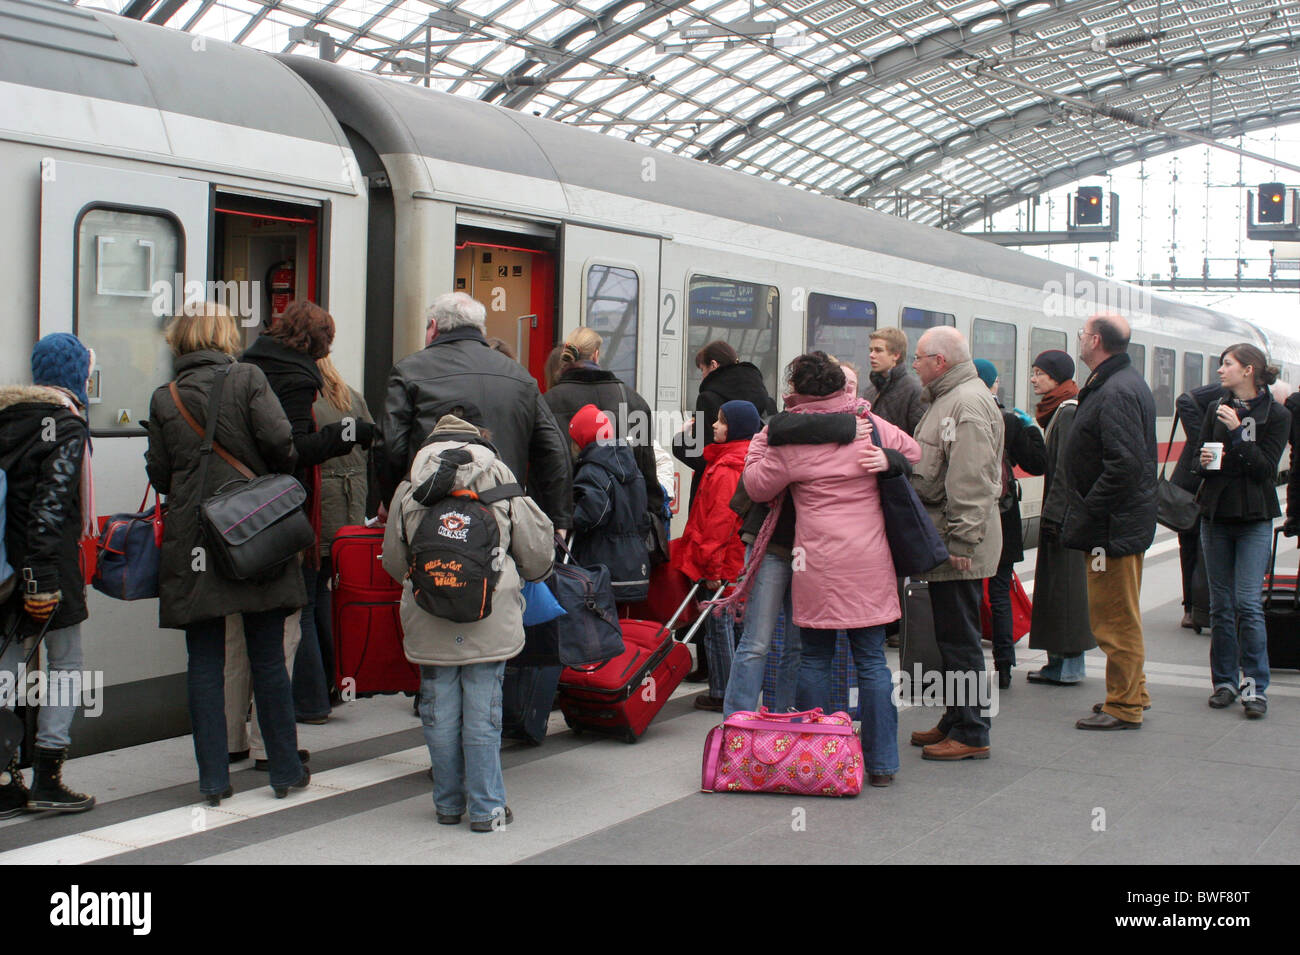 Passengers get on the train at main station, Berlin, Germany - Stock Image